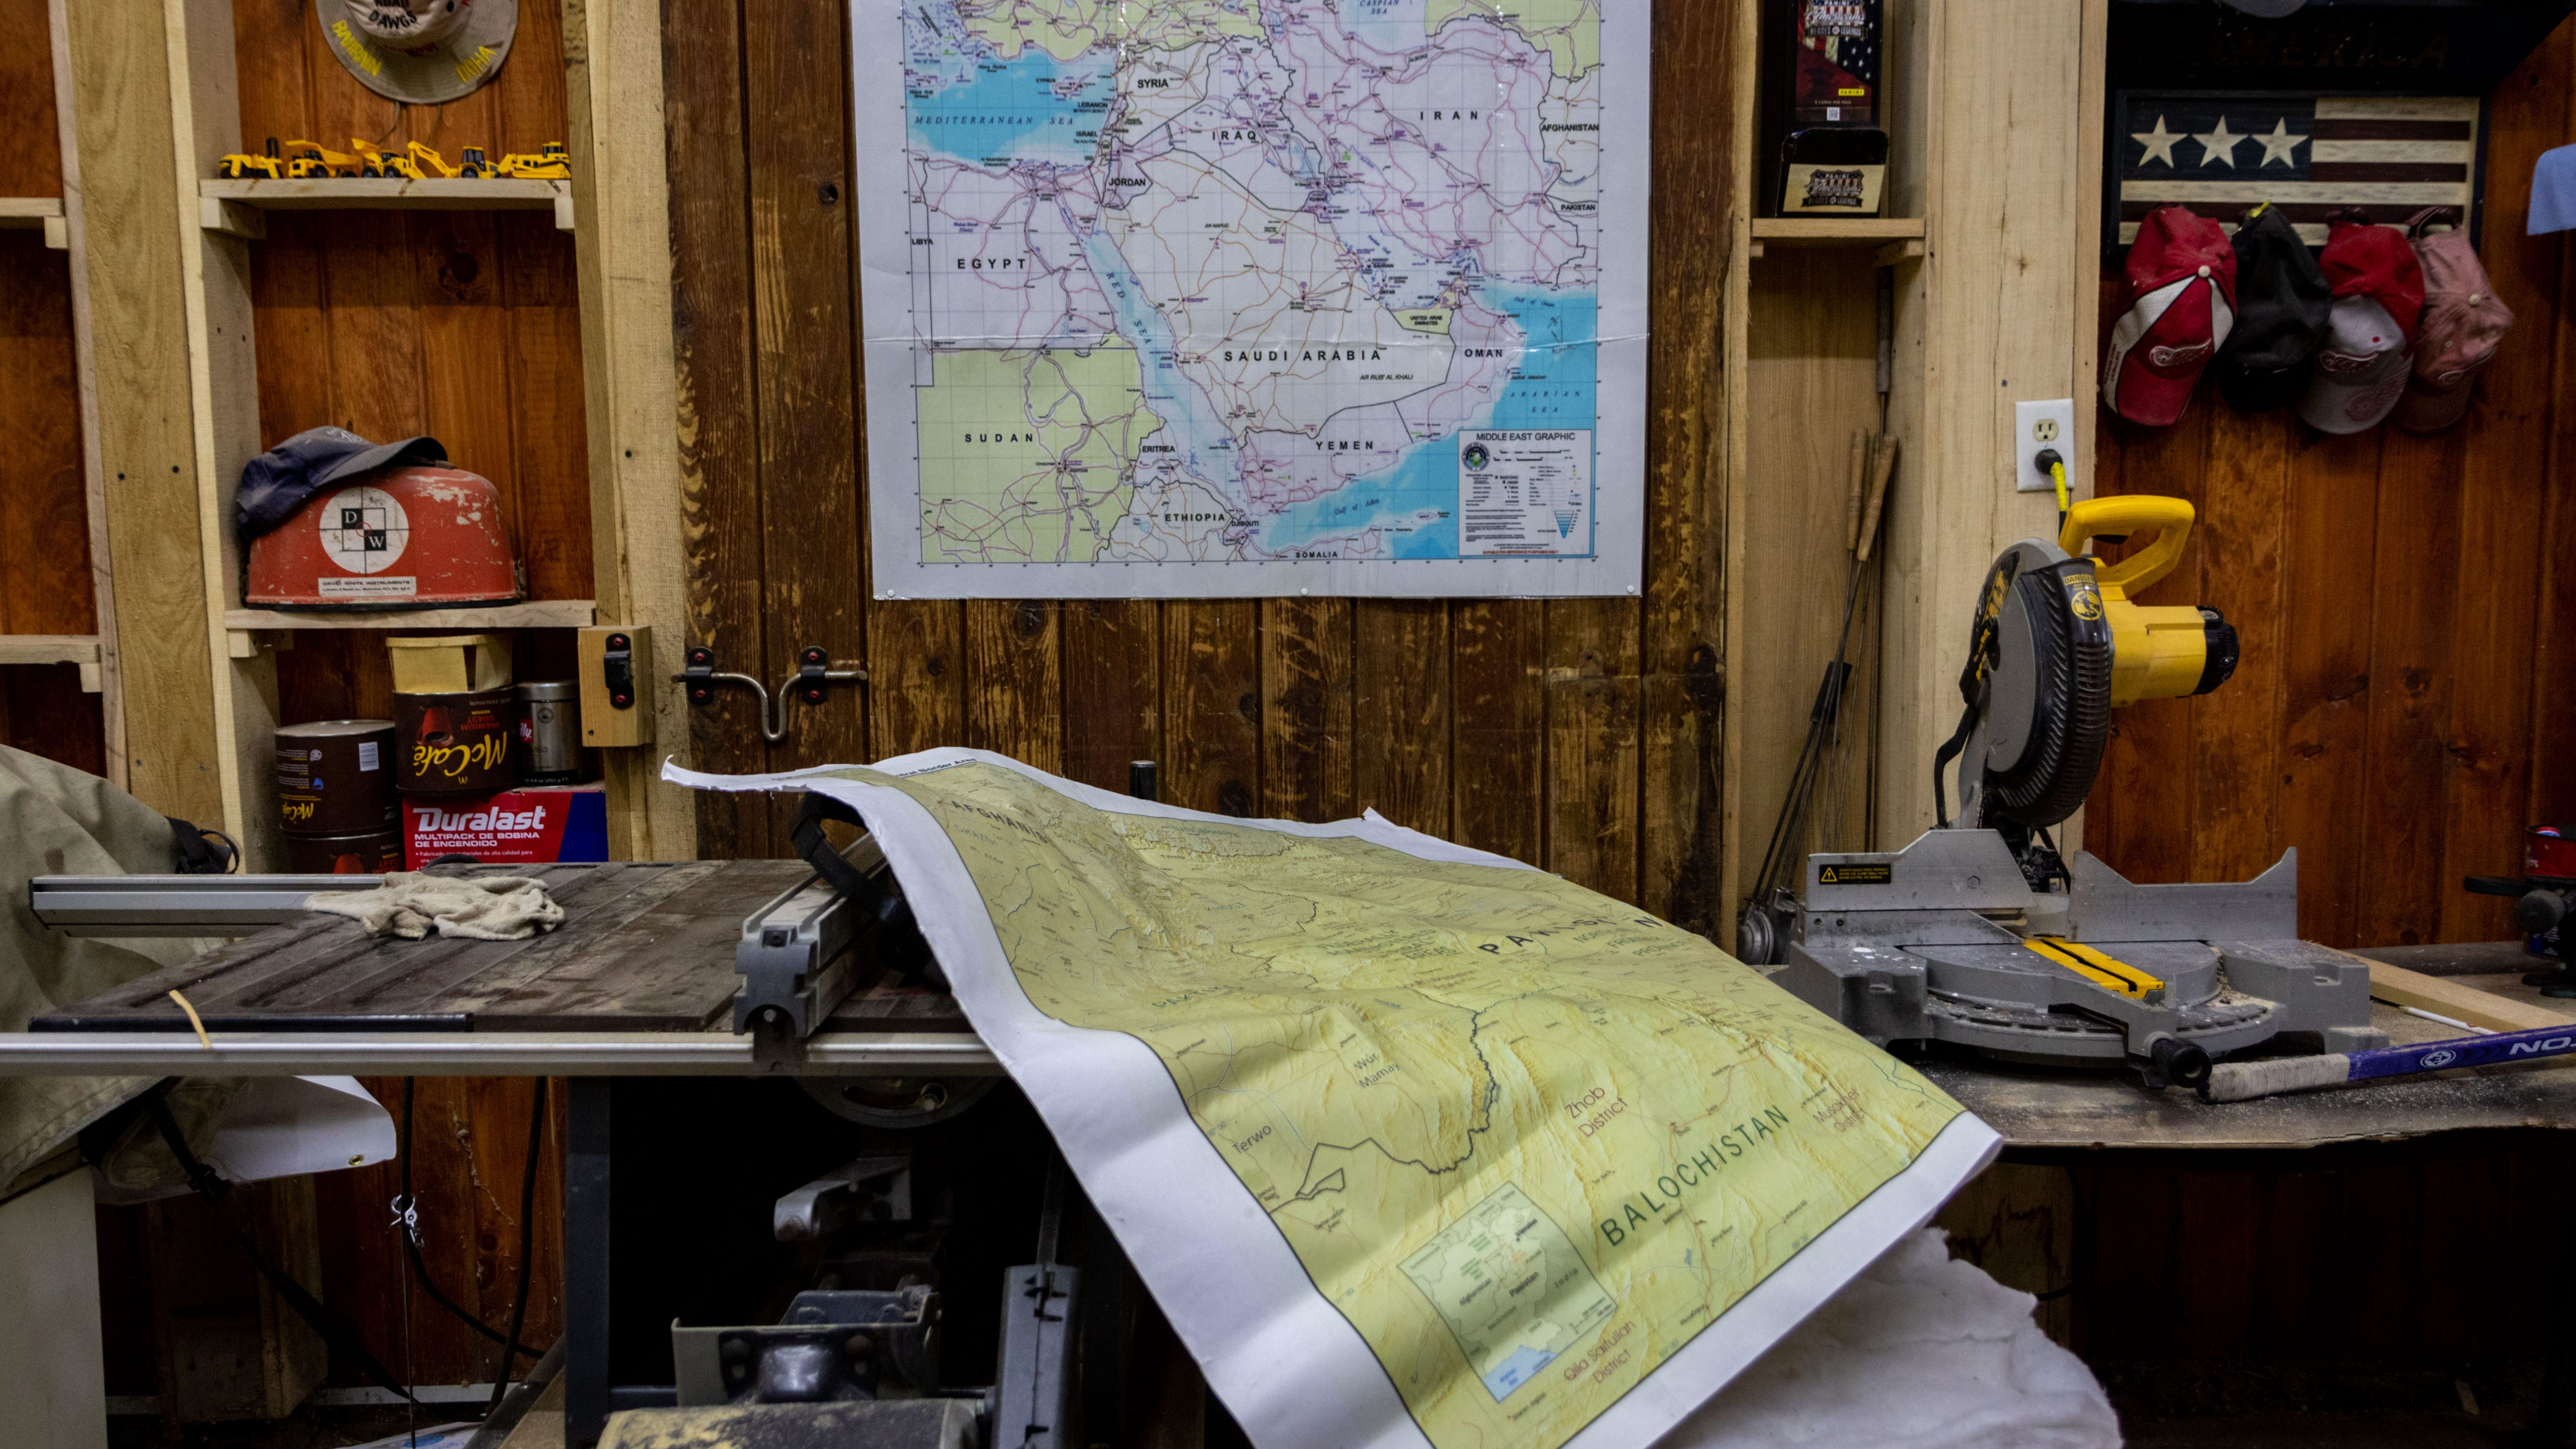 Maps of Afghanistan and the Middle East, boh places where Gerald Keen was stationed, are located in the Keen's shop. The Keen's are on a mission to help Gerald's former Afghan interpreter get a special visa to come to the U.S. before American forces withdraw from Afghanistan by Sept. 11.